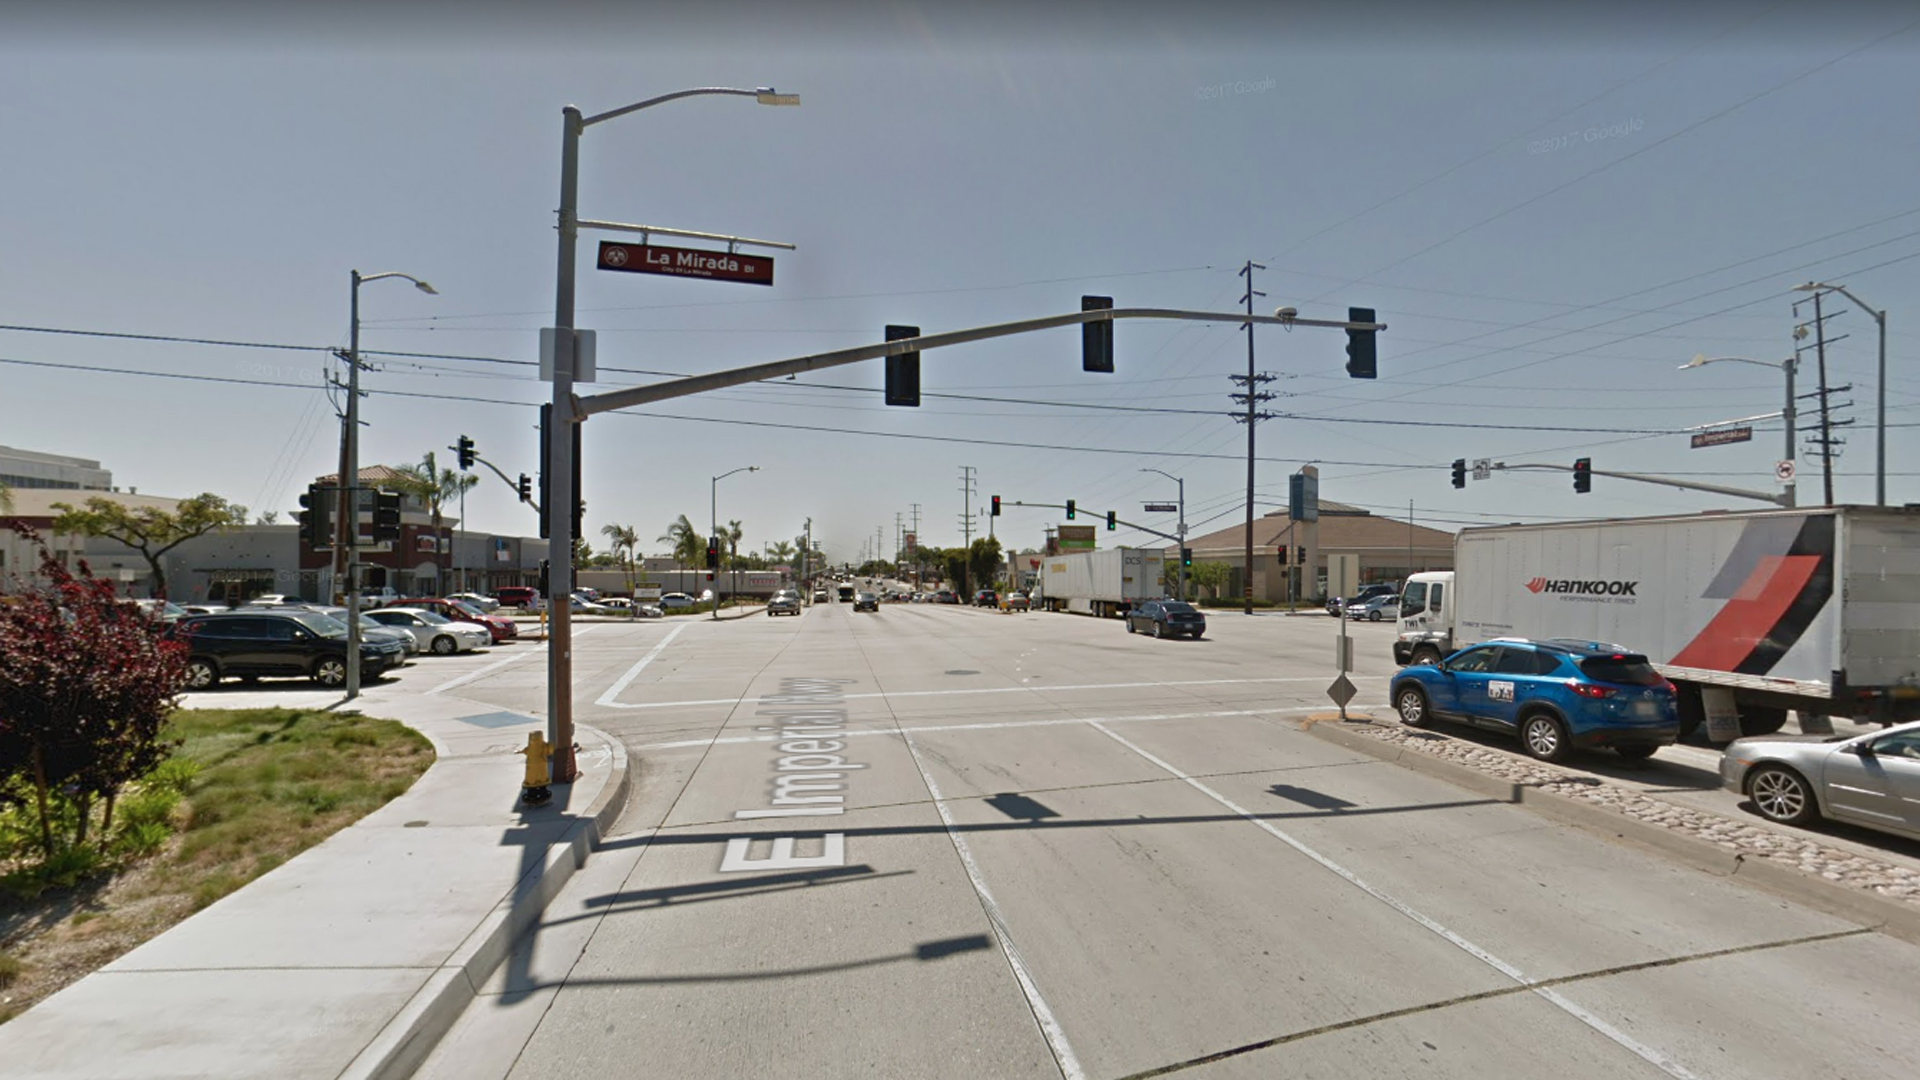 The intersection of Imperial Highway and La Mirada Boulevard in La Mirada, as pictured in a Google Street View image in May of 2017.